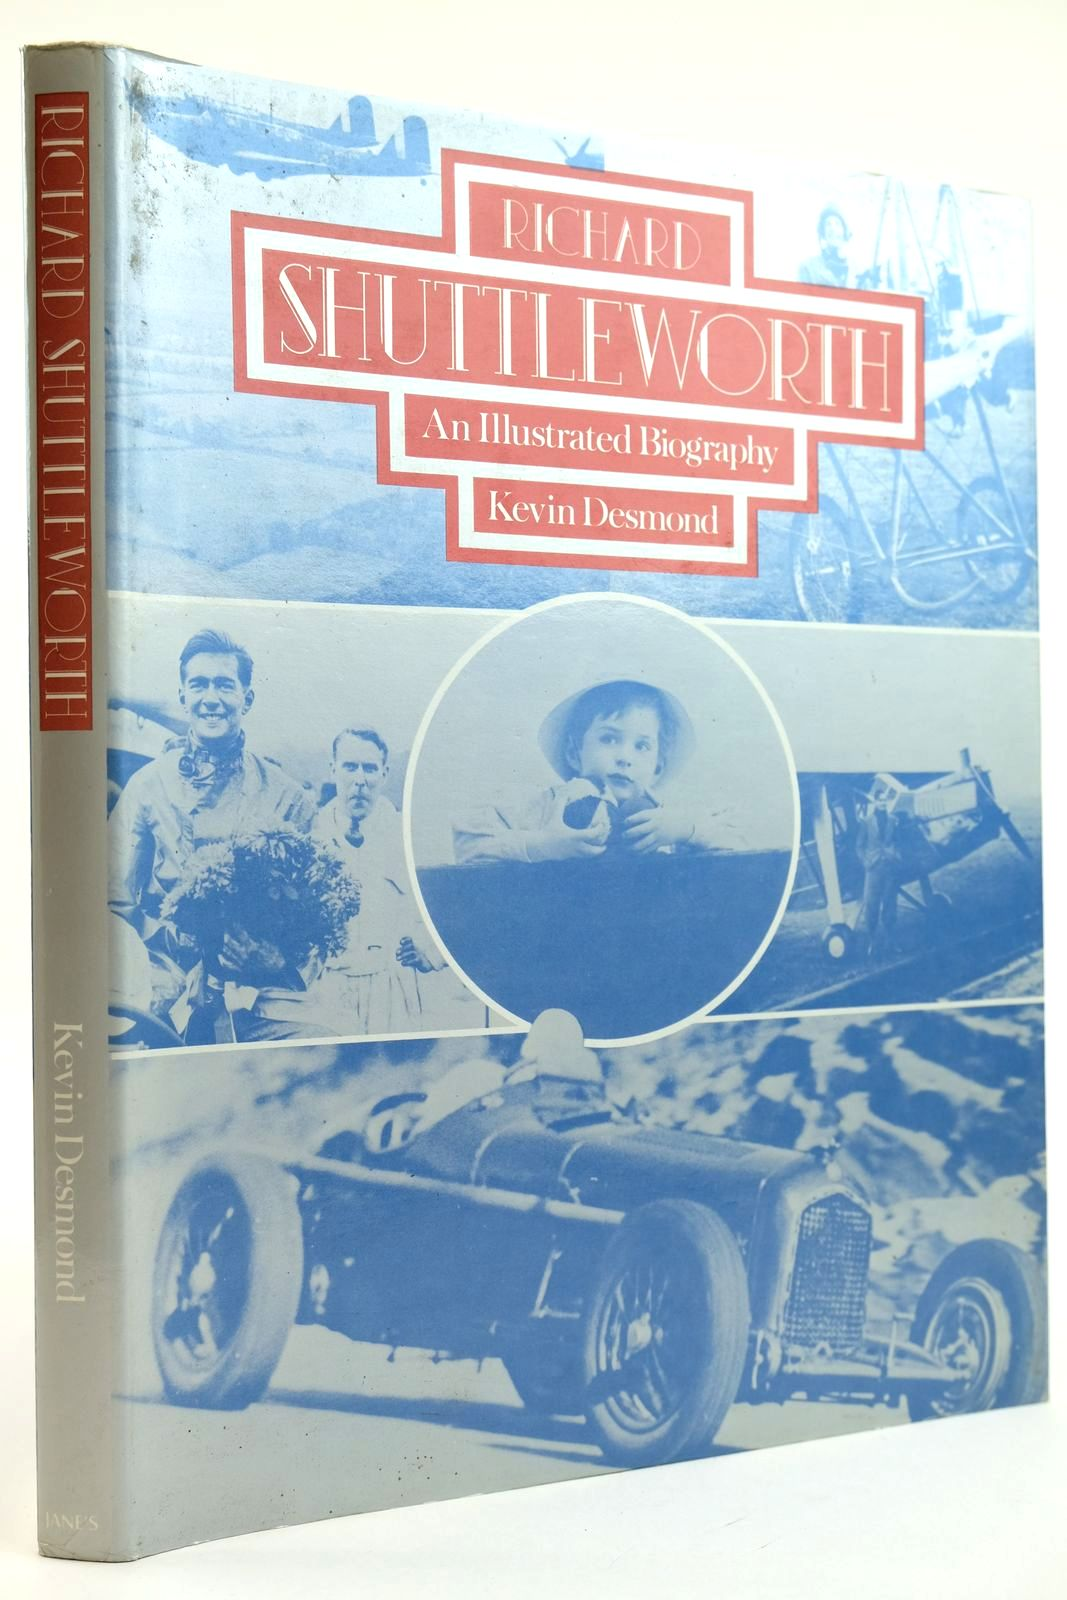 Photo of RICHARD SHUTTLEWORTH AN ILLUSTRATED BIOGRAPHY written by Desmond, Kevin published by Janes Publishing Co. Ltd. (STOCK CODE: 2132139)  for sale by Stella & Rose's Books